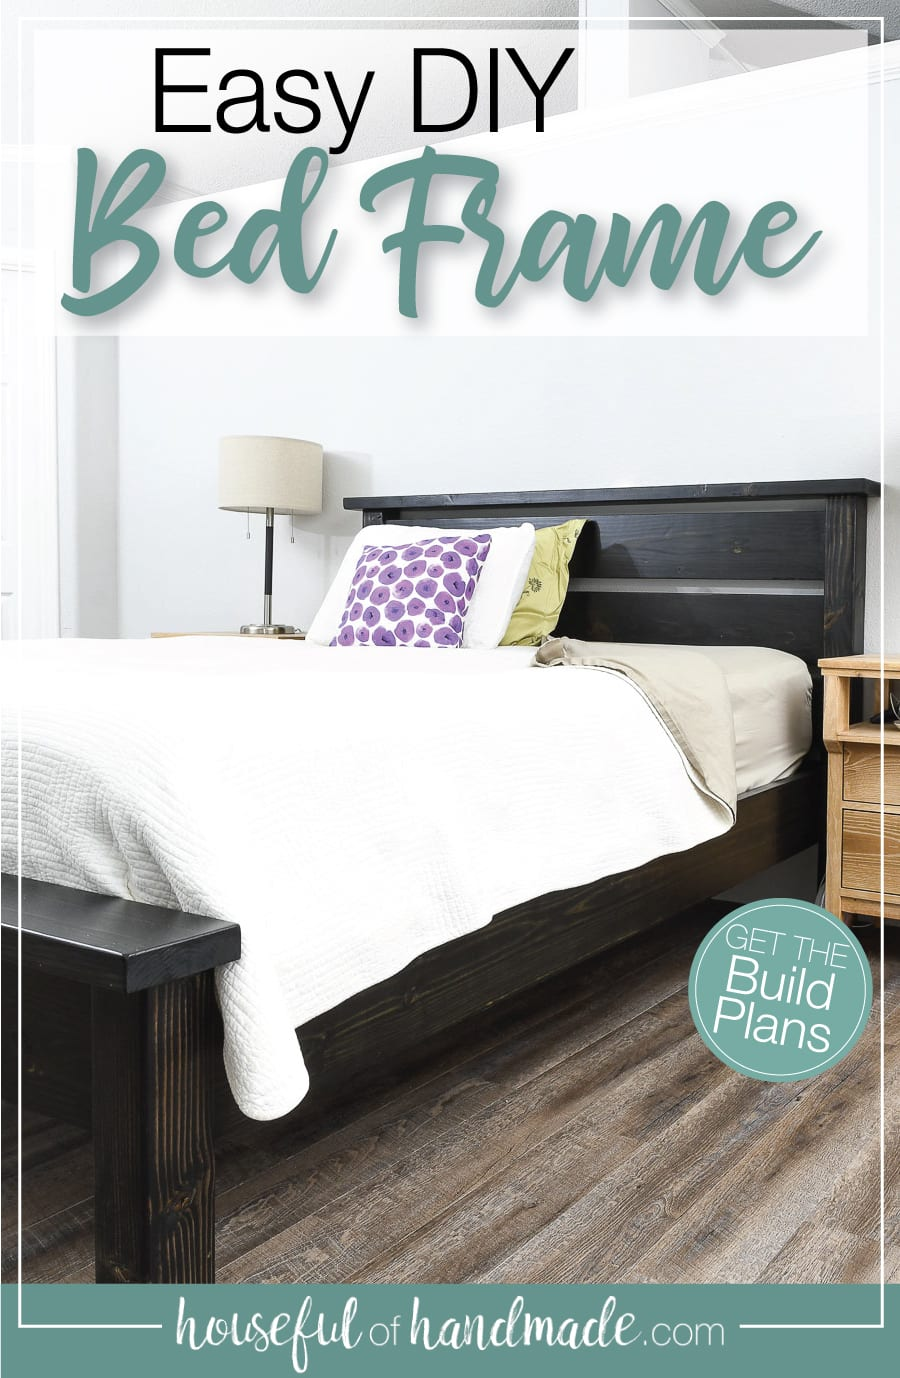 DIY bed frame stained black and assembled in a bedroom with bedding with text overlay: Easy DIY Bed Frame.